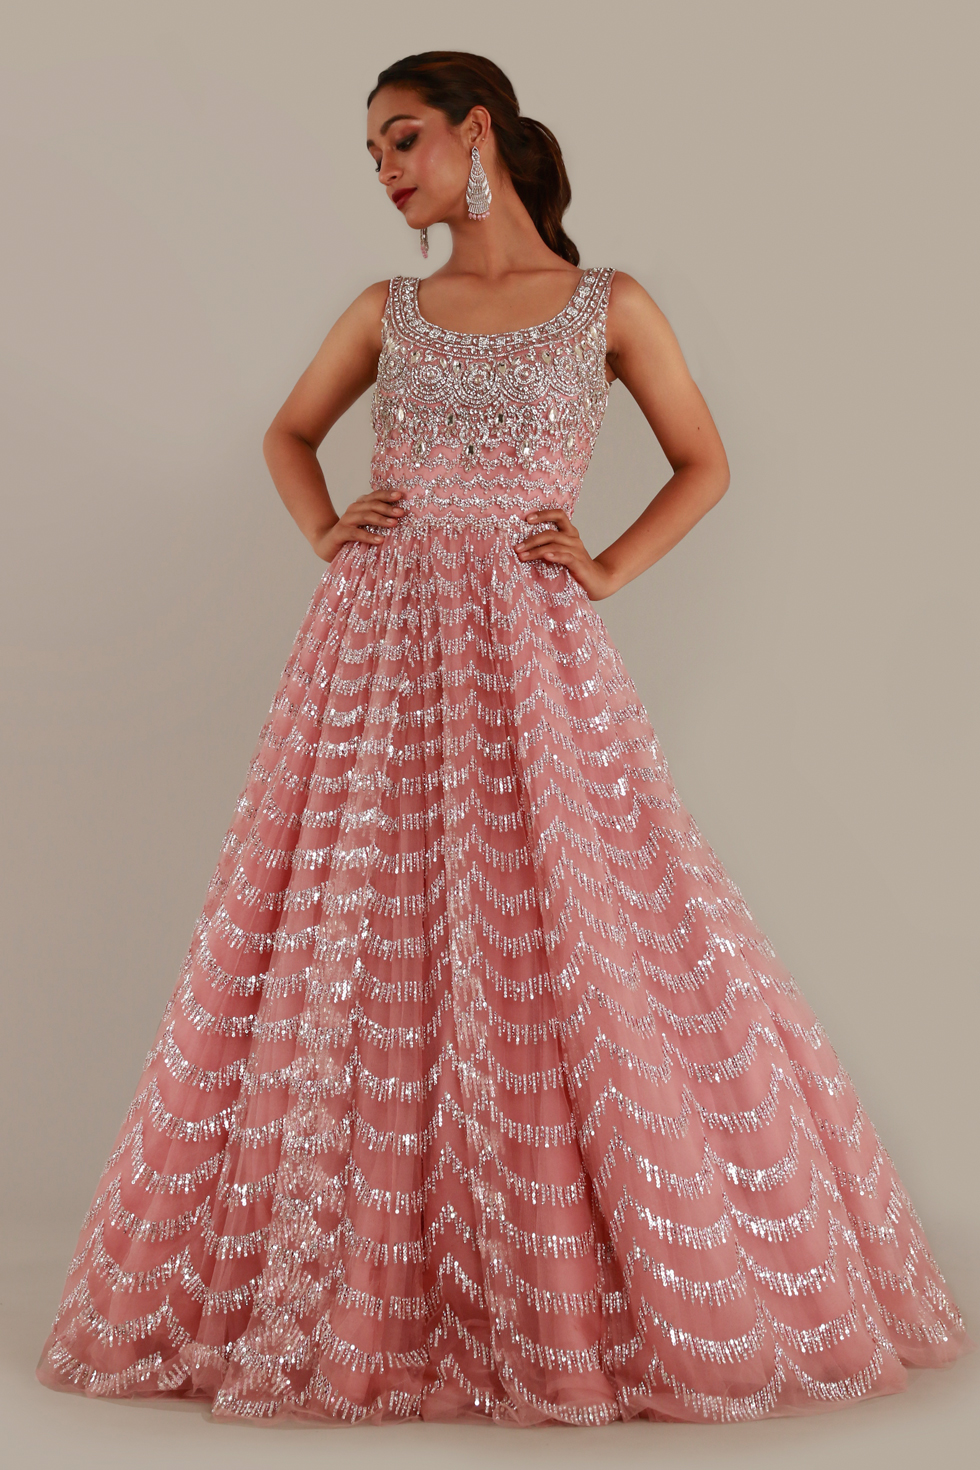 Taffy pink tulle gown with silver embroidery and stone embellishments